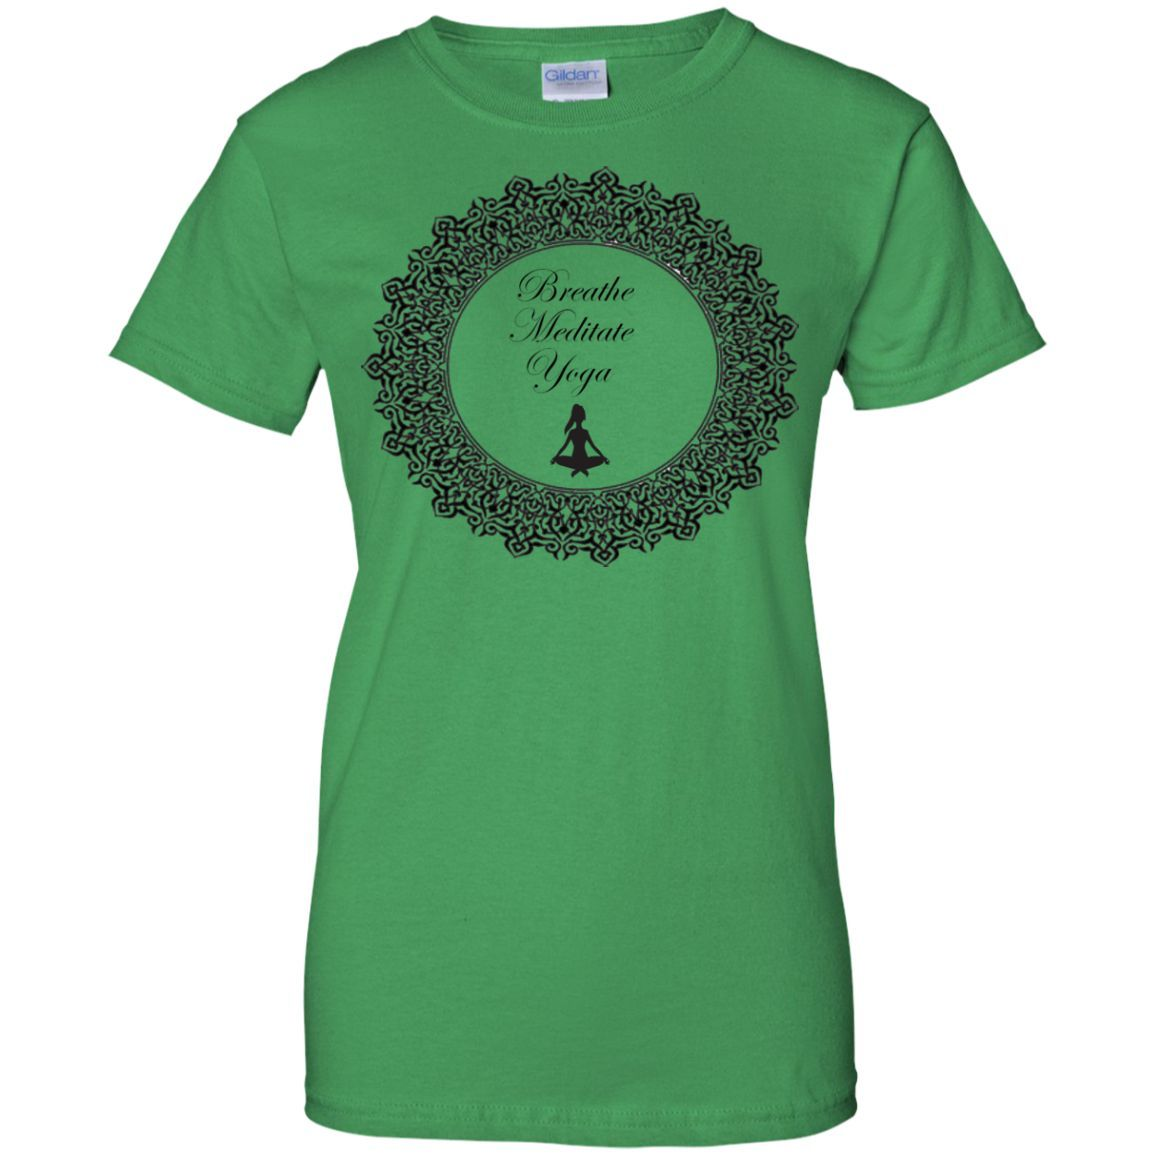 3B Yoga Ladies 100% Cotton T-Shirt